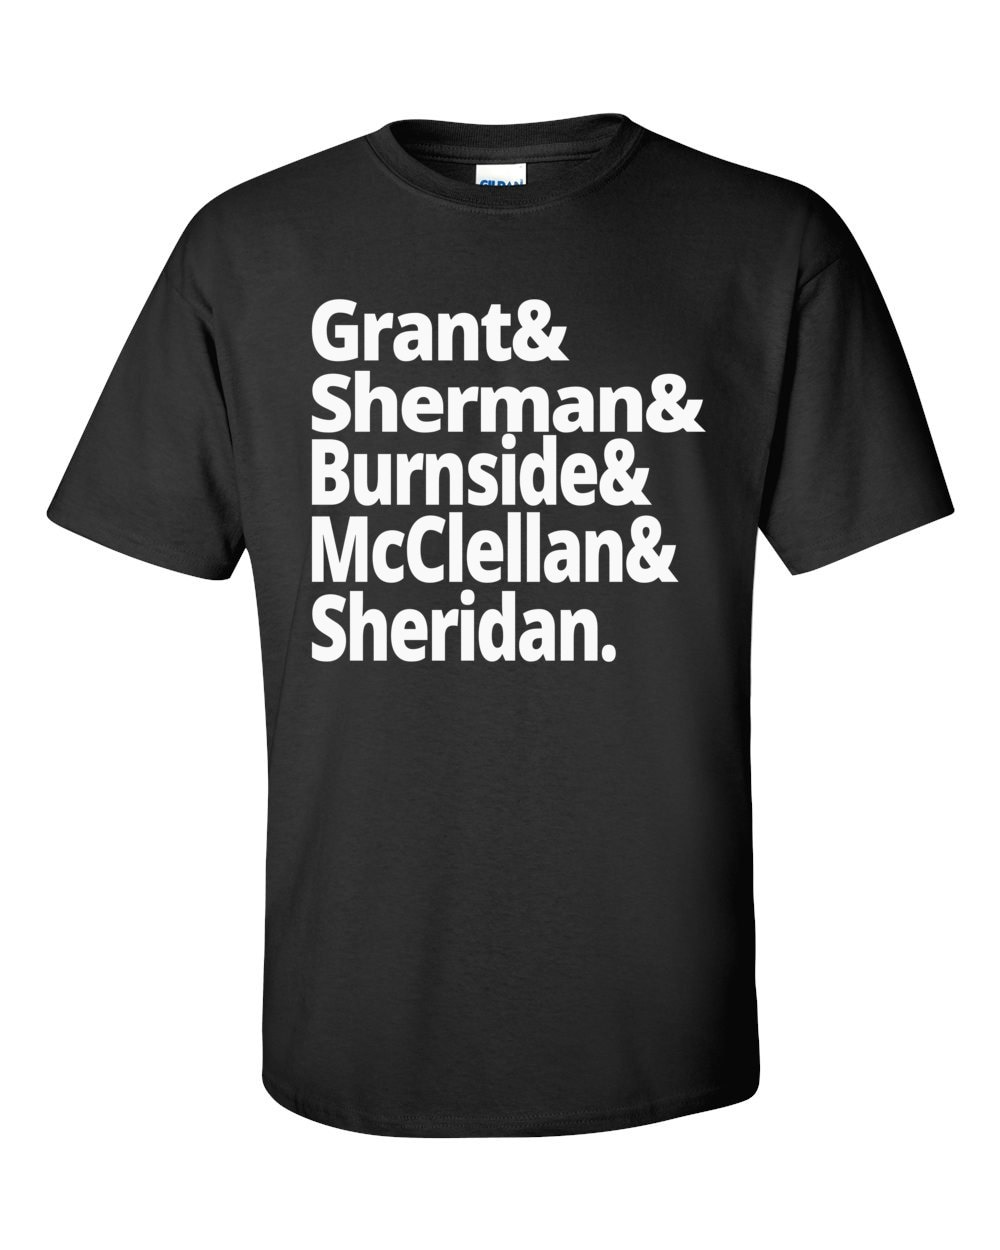 US Civil War - Union Army Generals - Grant, Sherman, Burnside, McClellan, Sheridan - US Civil War History T-shirt